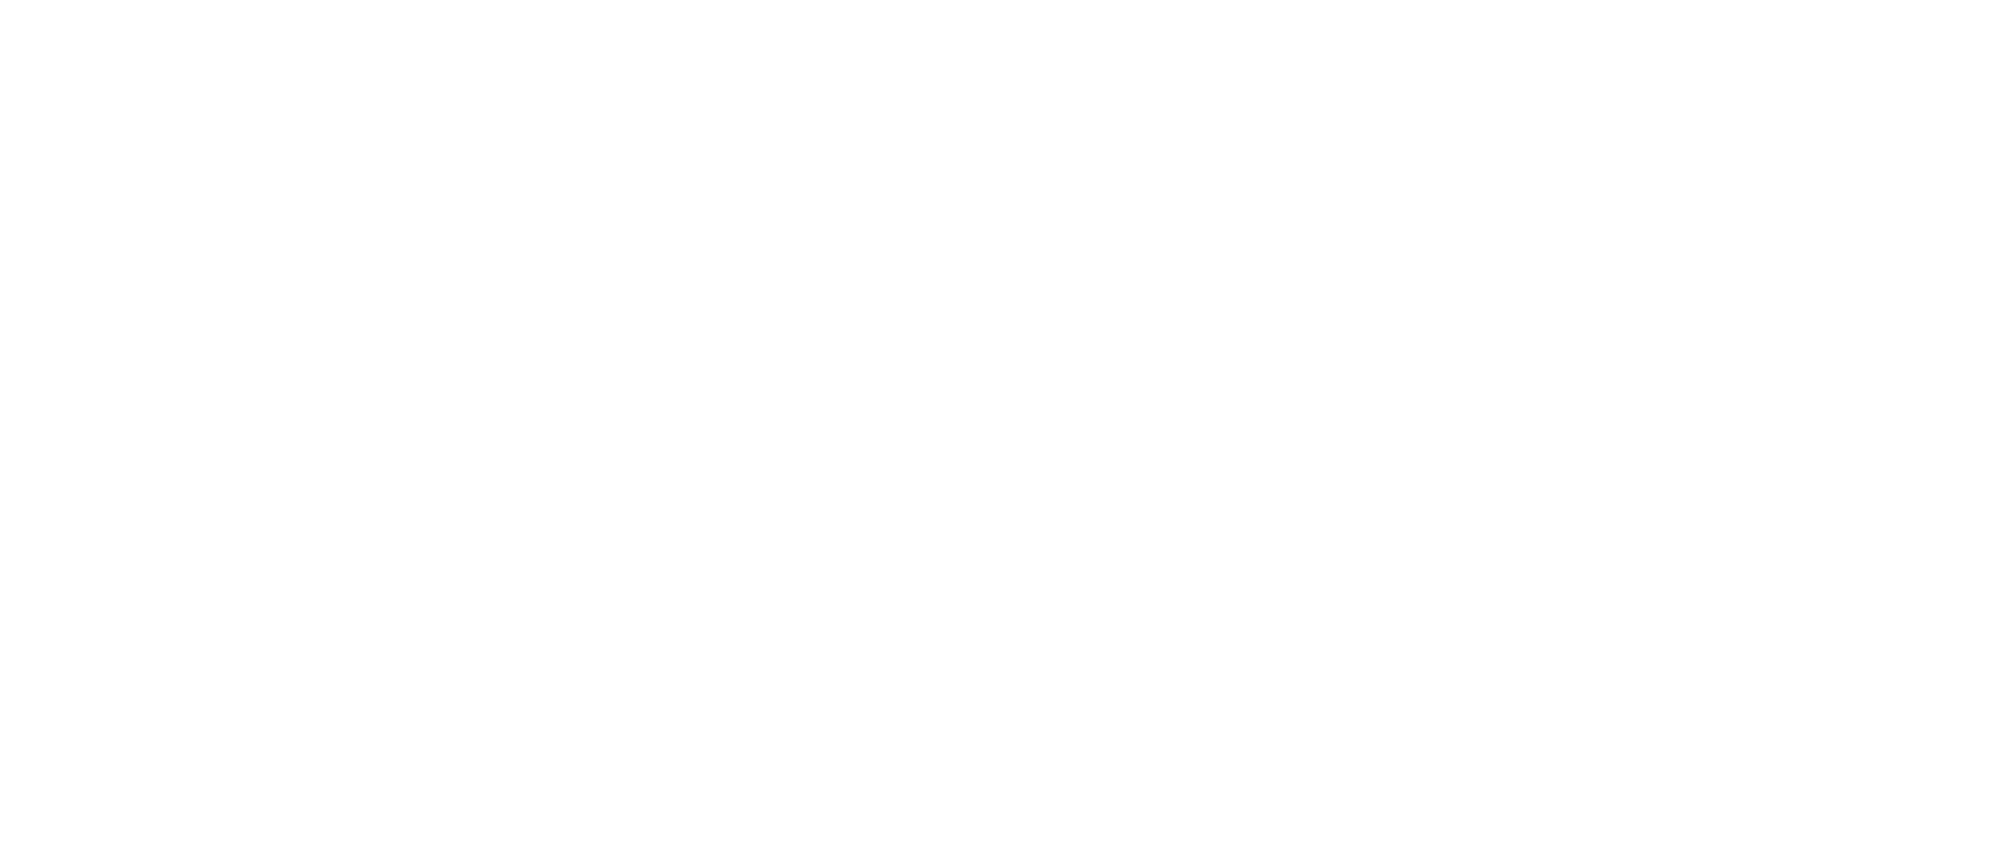 CultCinemaBar_Logo_Website_01.png